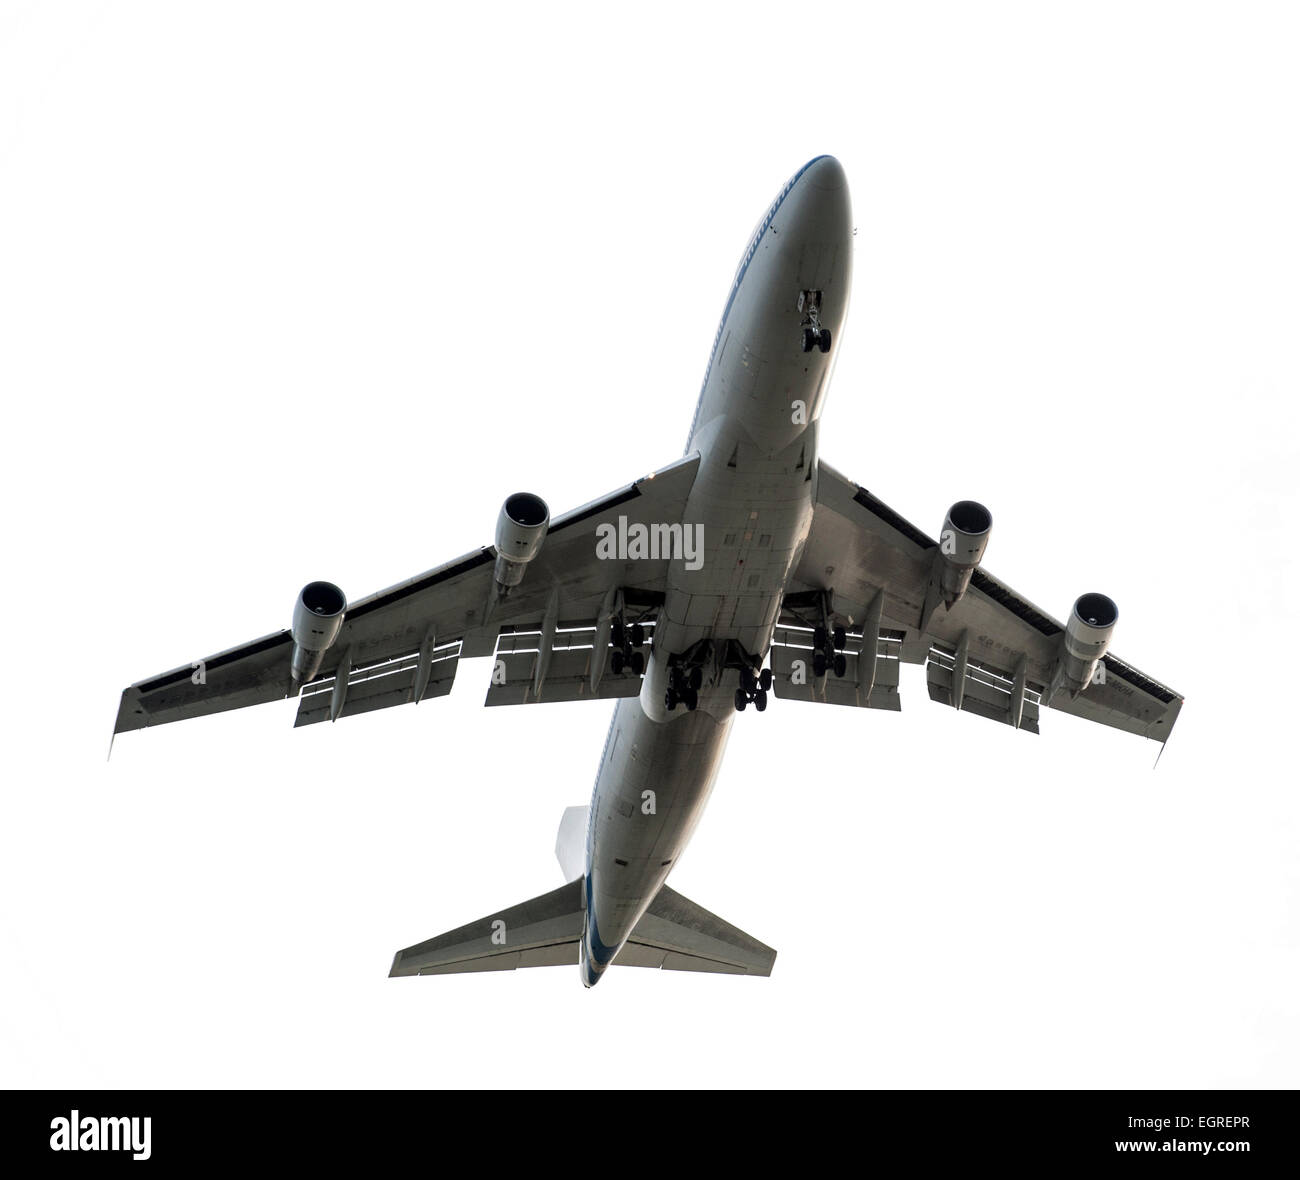 jumbo jet from underneath on a white background - Stock Image